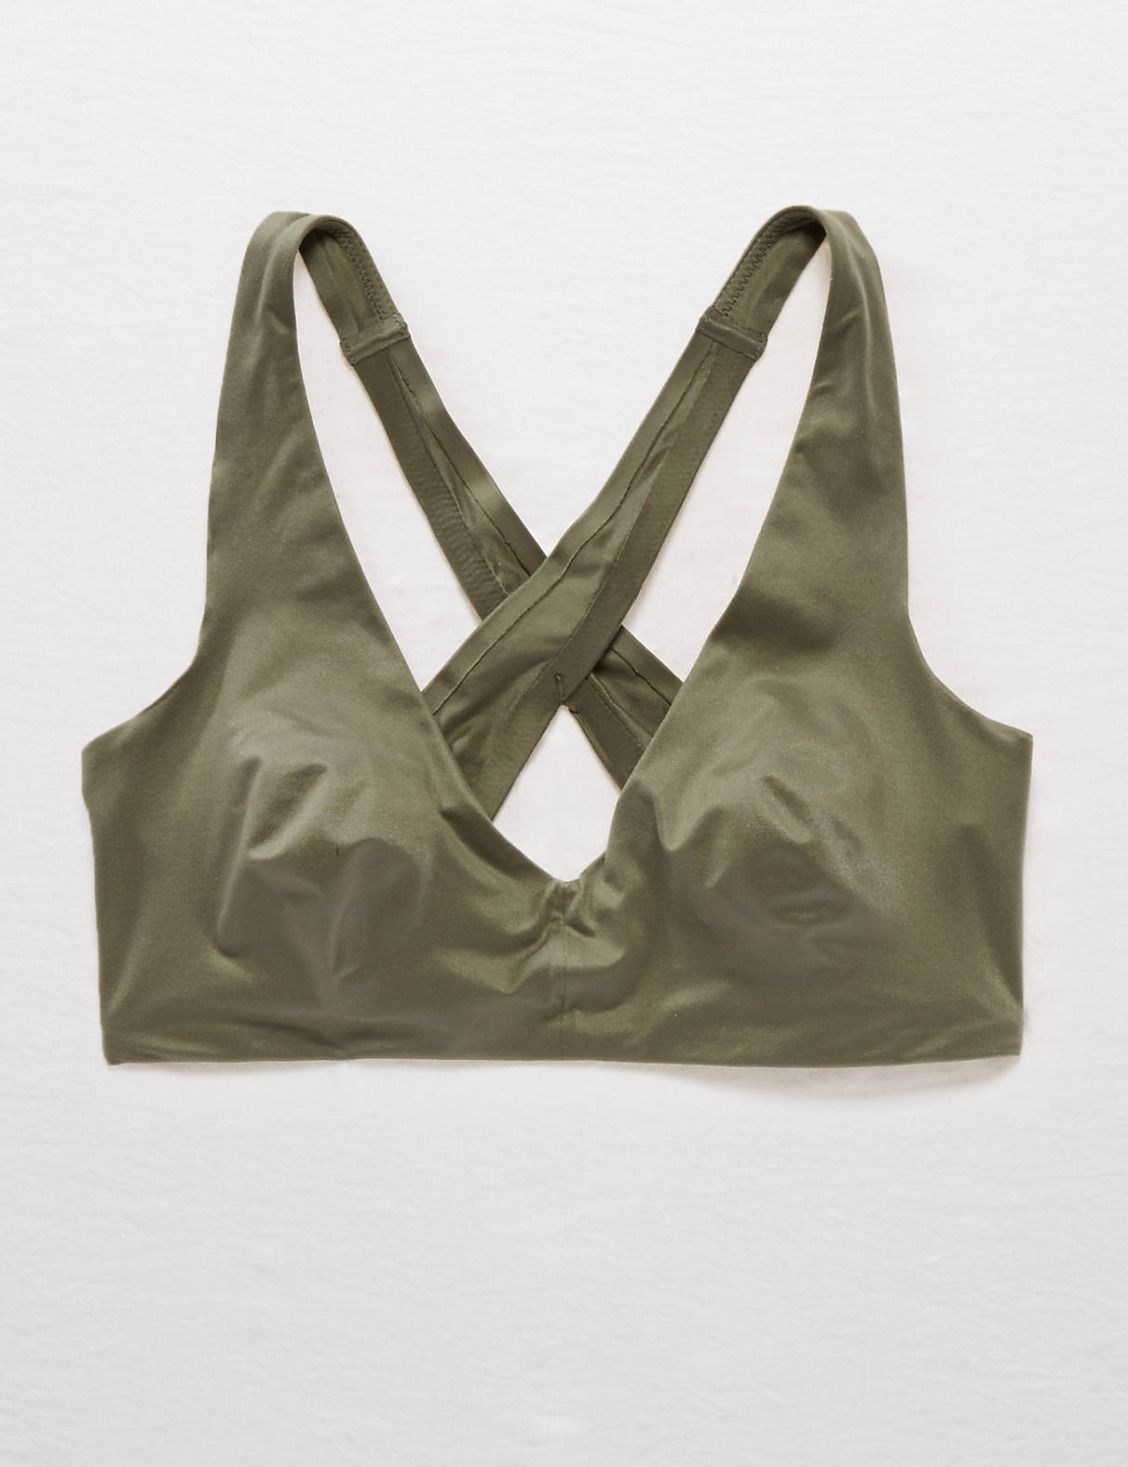 Aerie Sunnie Bralette, Camo Green | Aerie for American Eagle